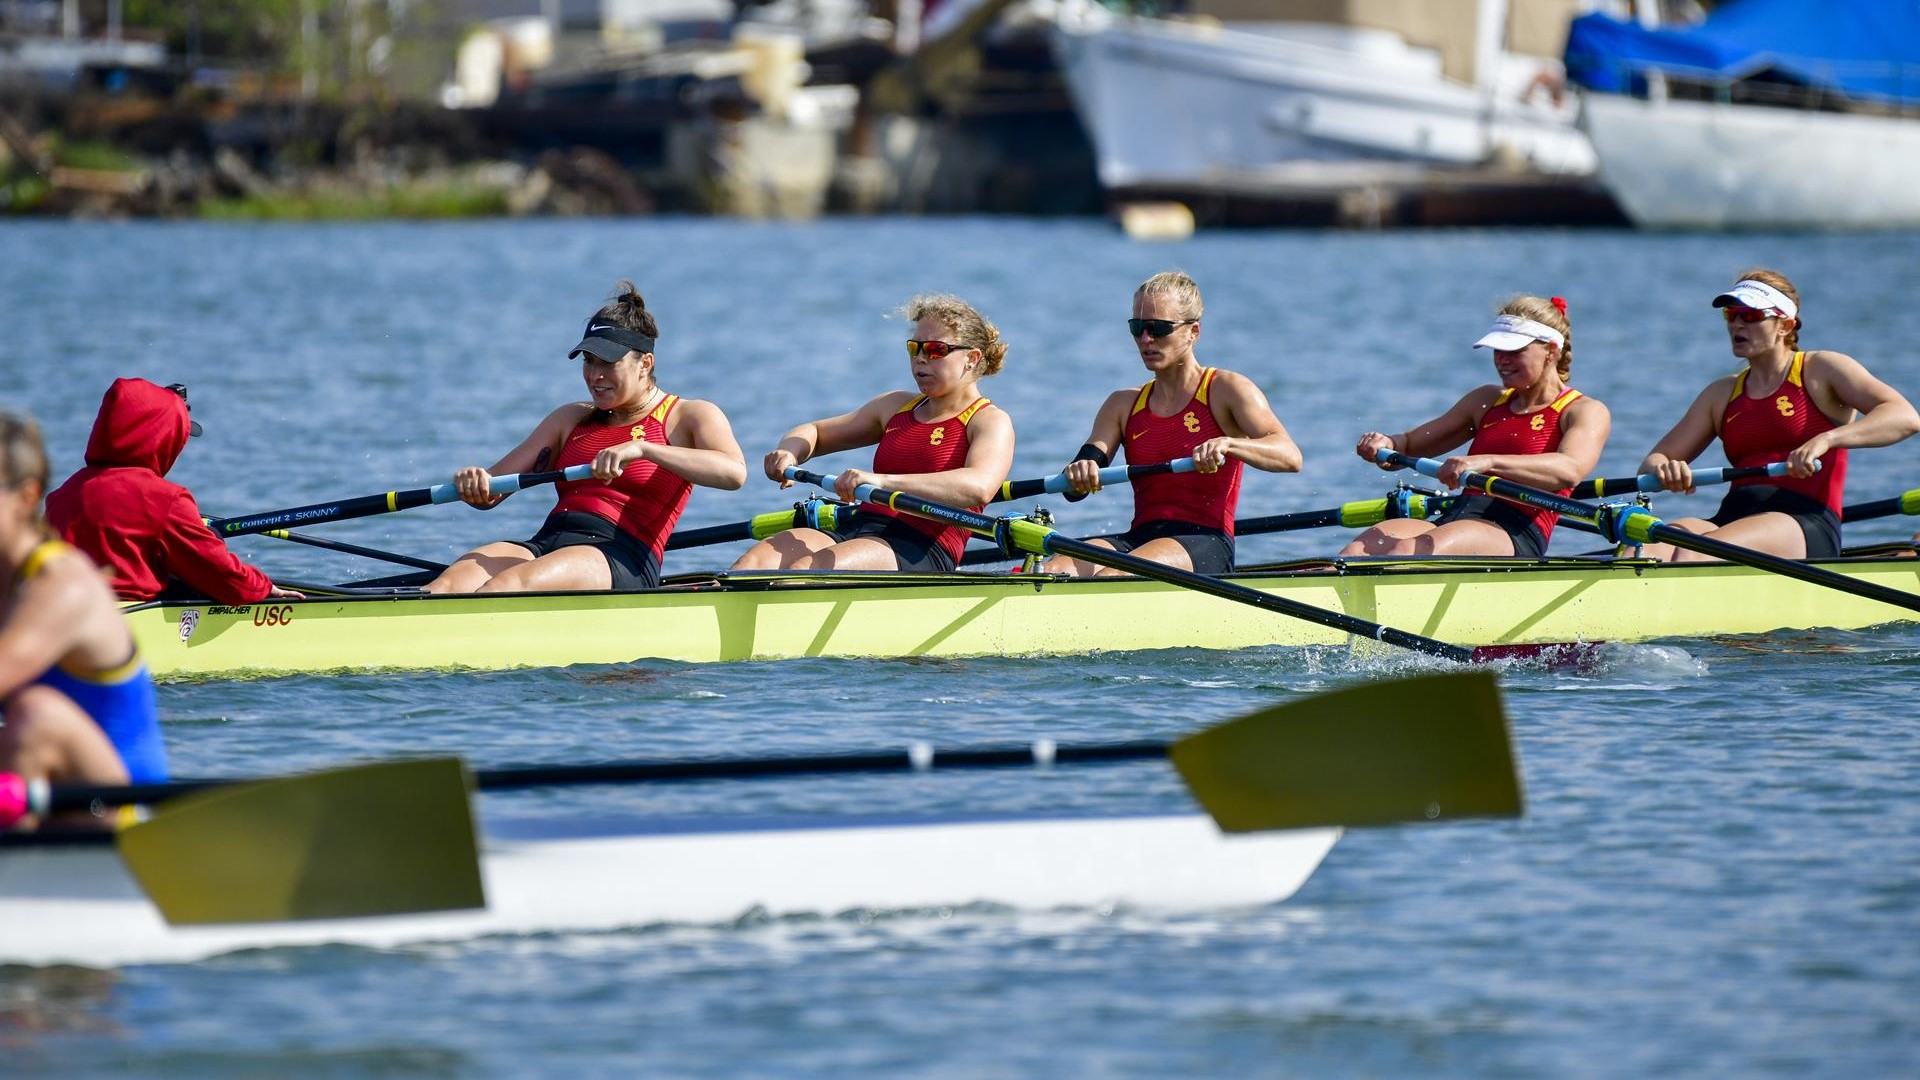 79e90e6f822c USC Women s Rowing Places 12th at NCAA Championships - USC Athletics